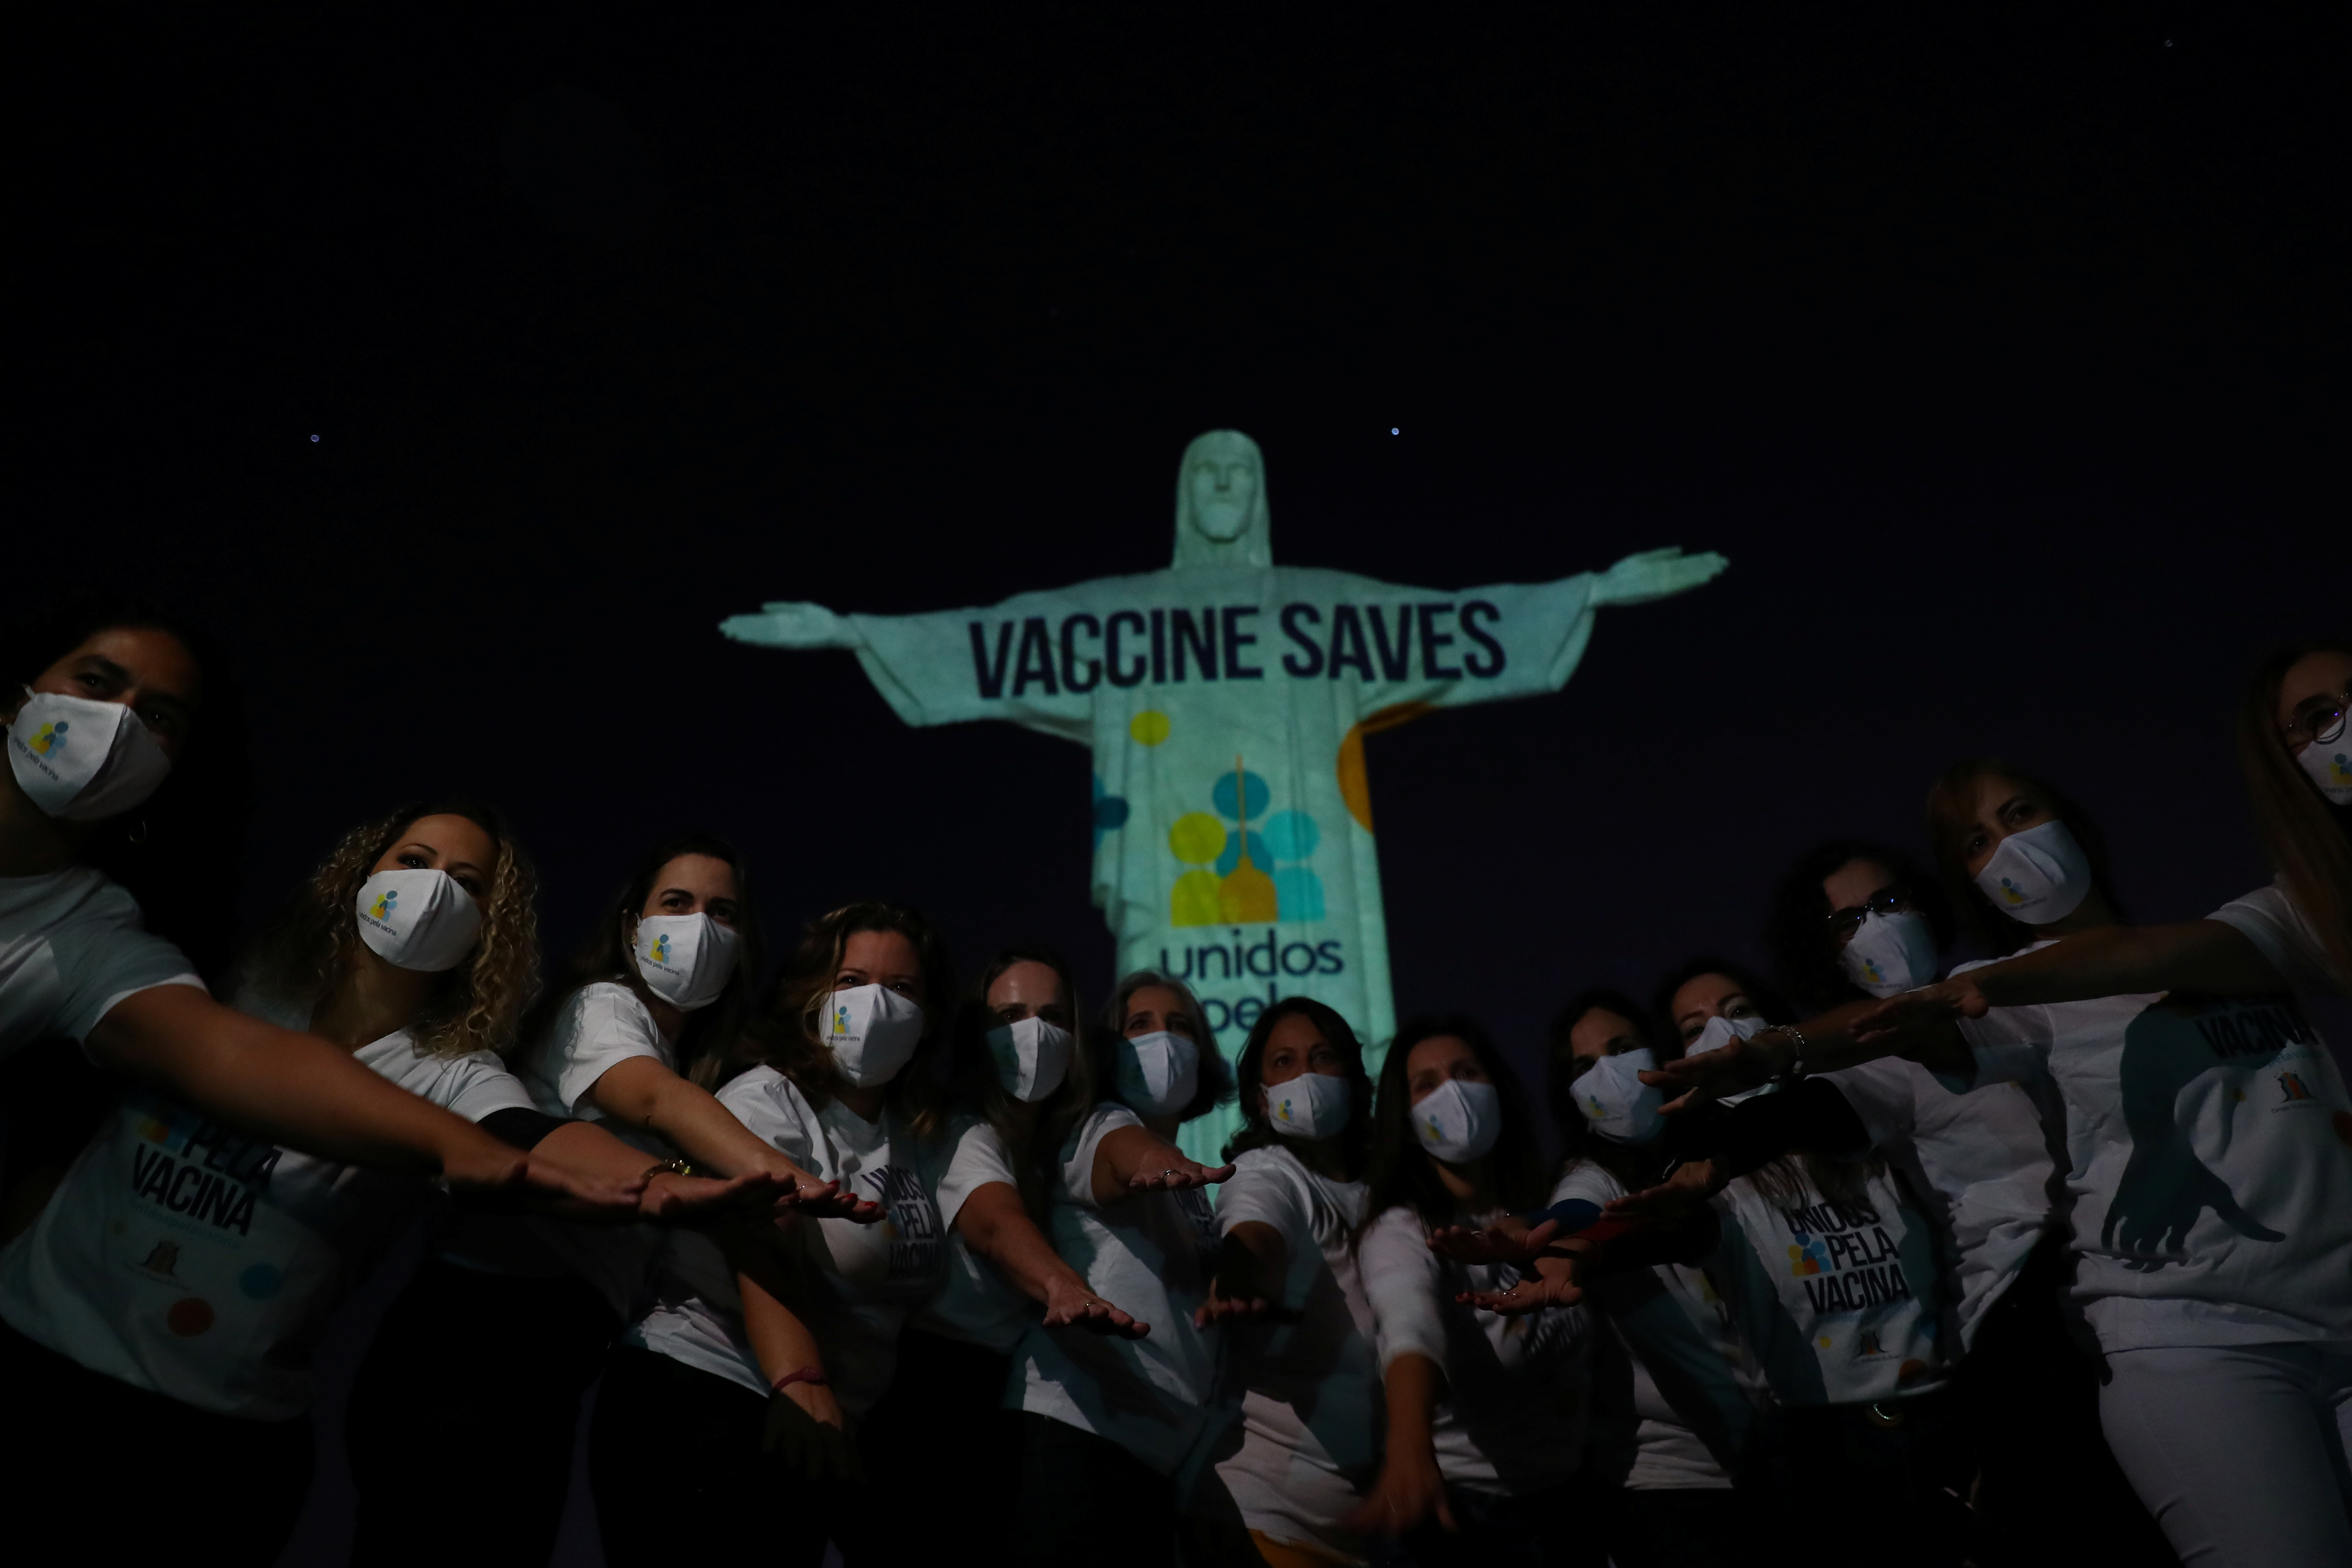 Members of the United Vaccine Movement pose in front of the Christ the Redeemer statue as the message